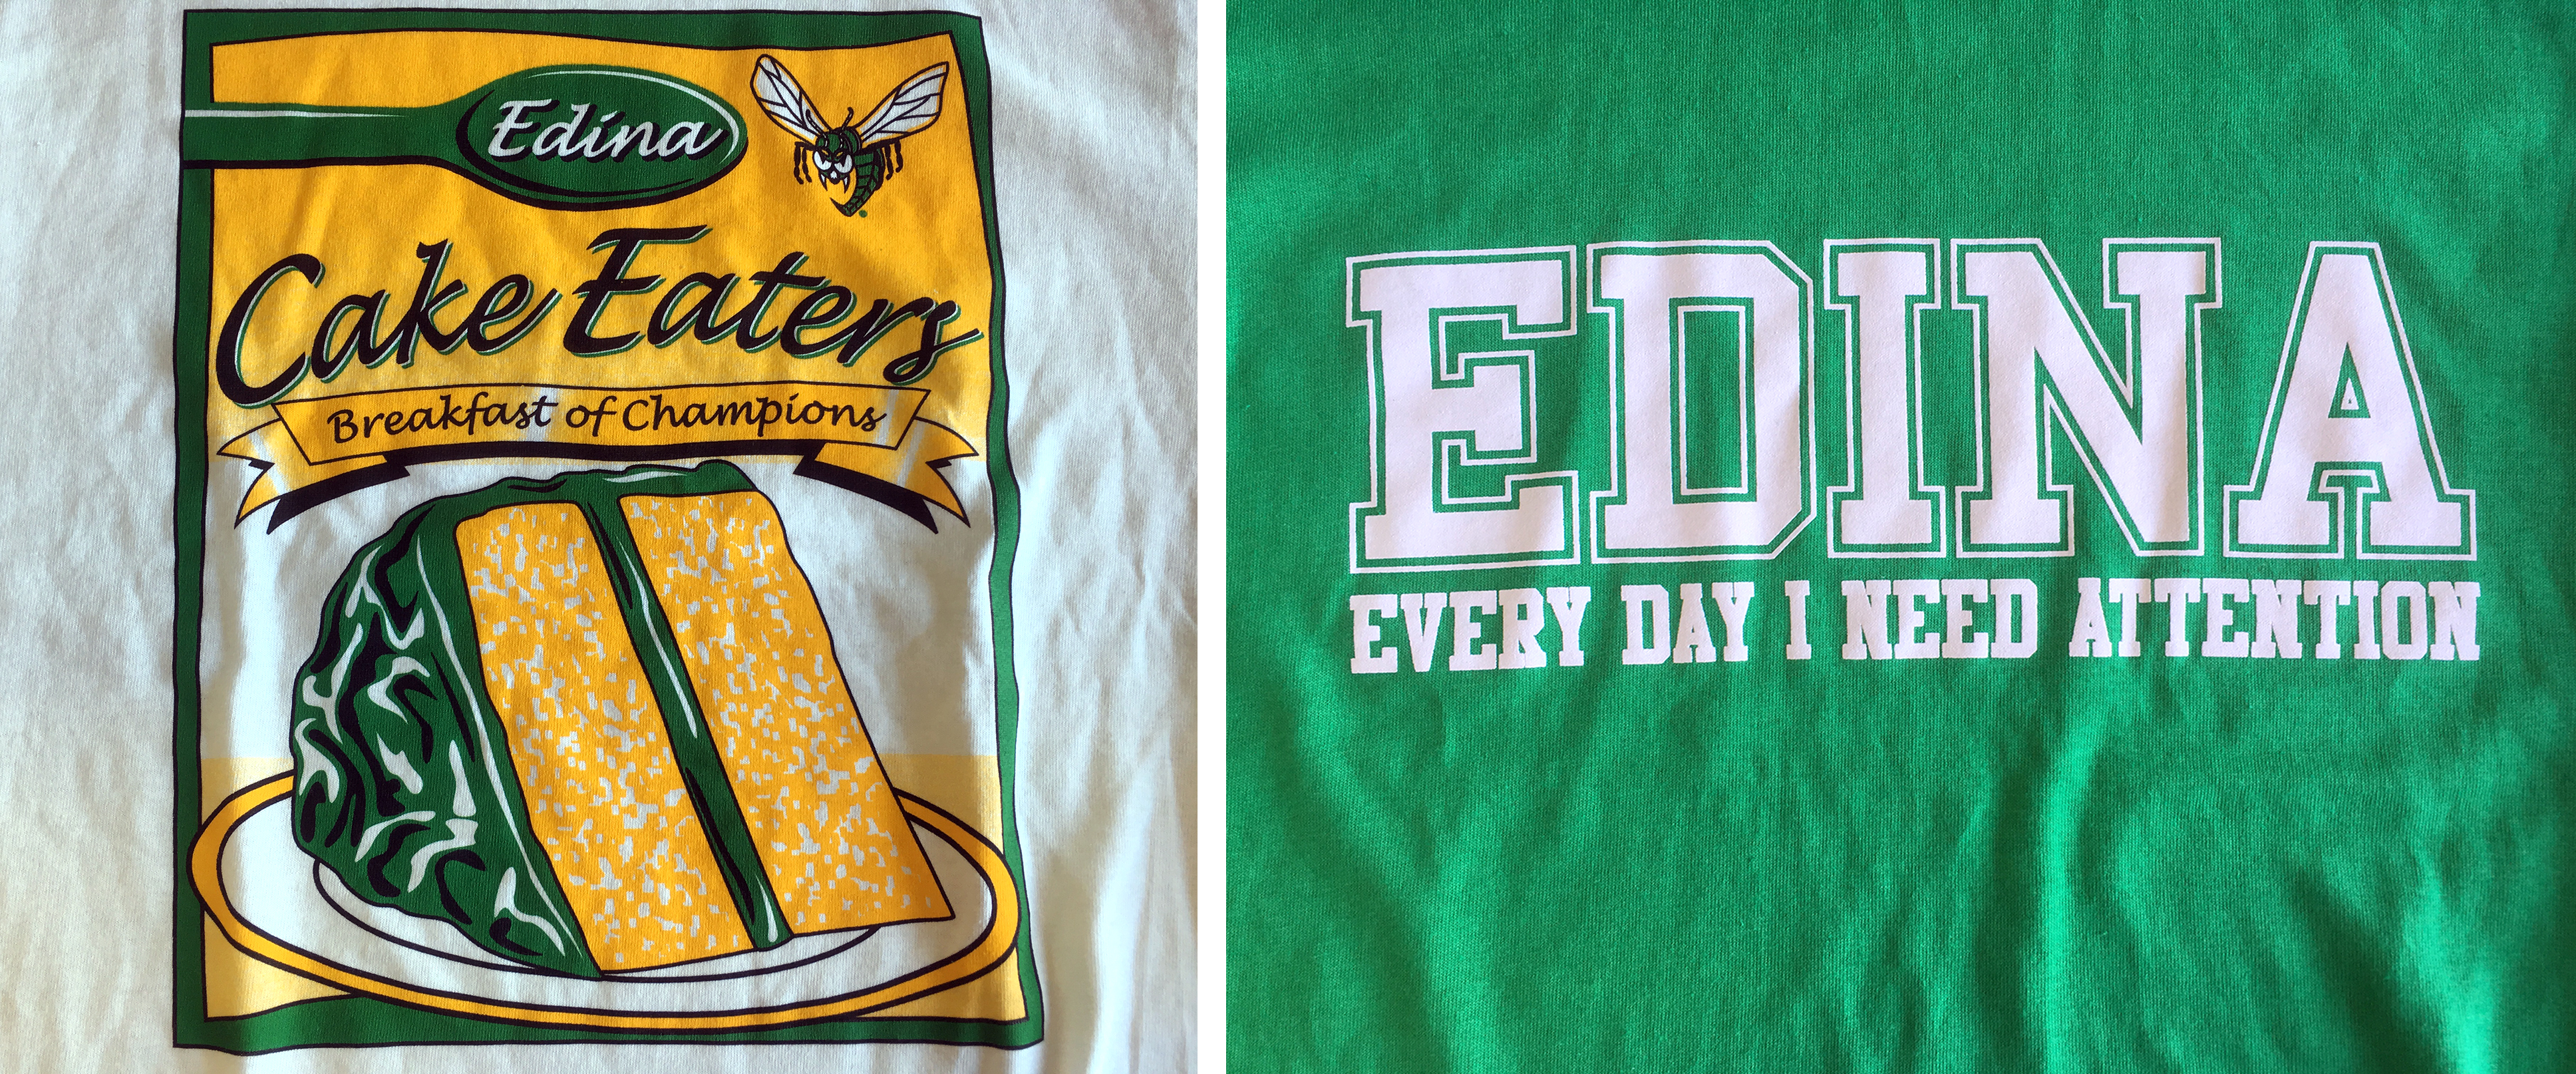 T-shirts mocking Edina hatred are hot sellers at General Sports, the local sporting-goods institution adjoining Braemar Arena.